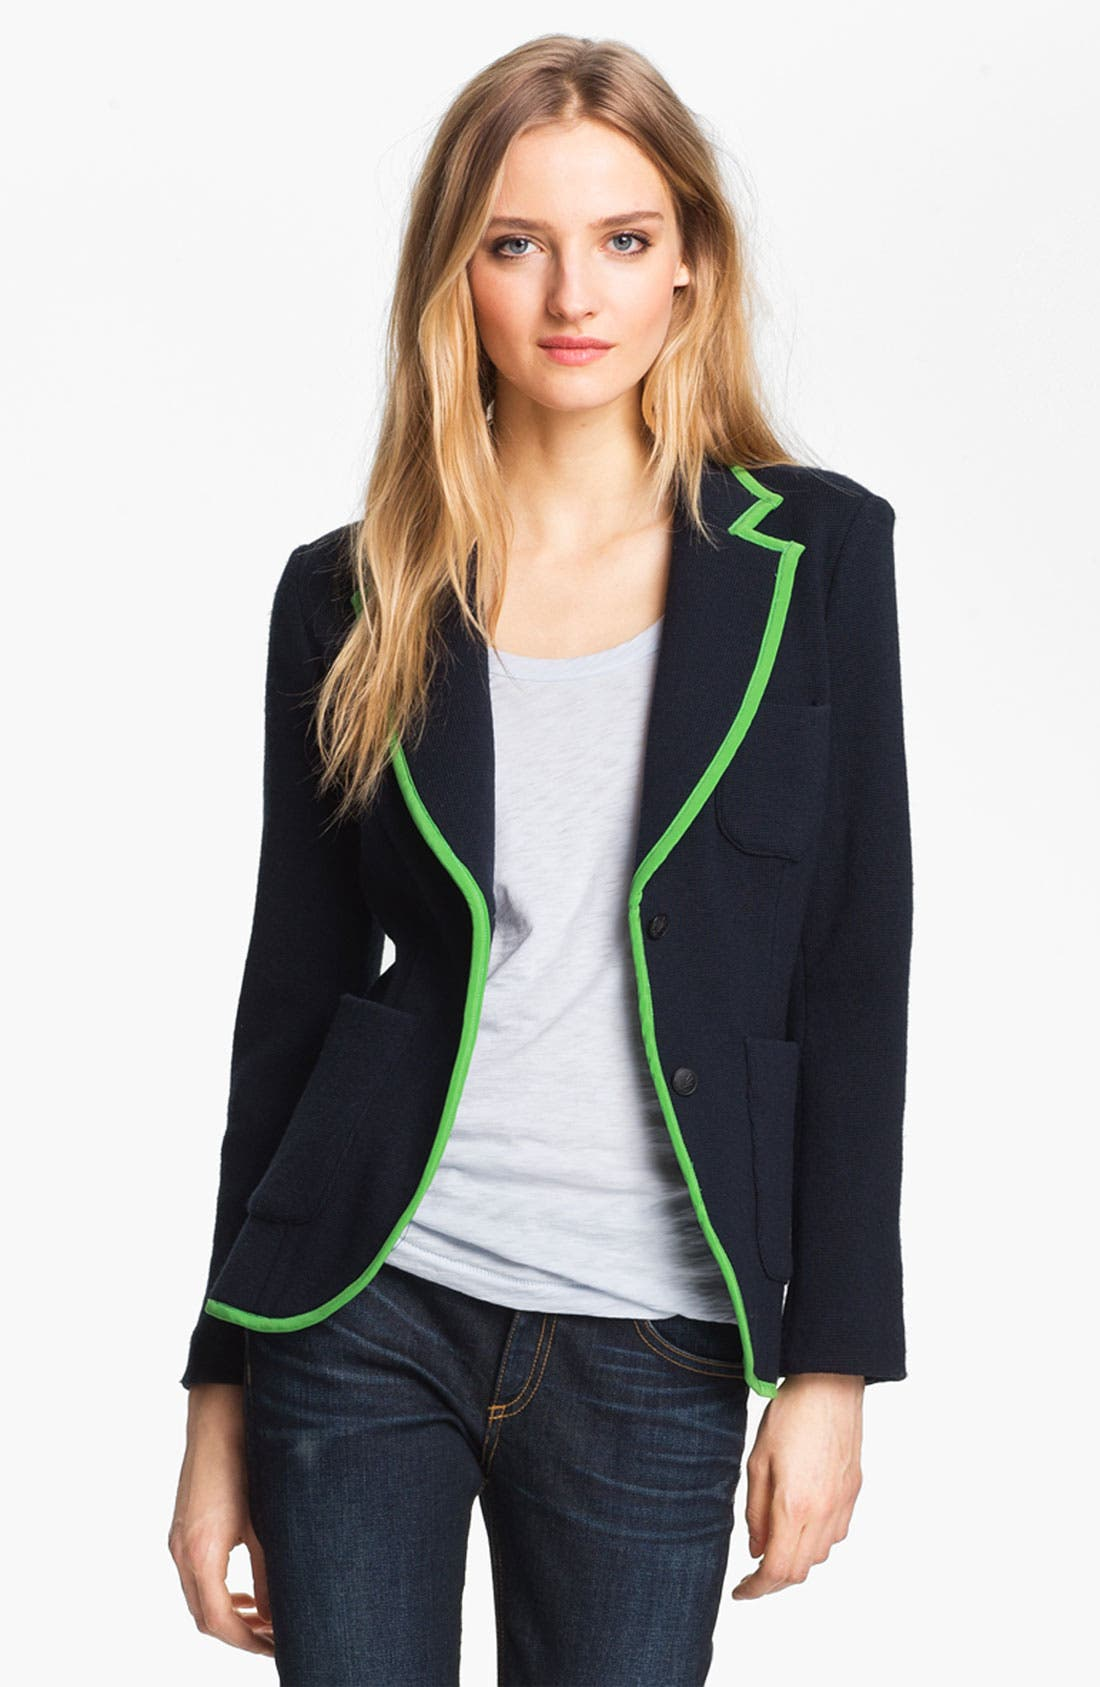 Alternate Image 1 Selected - rag & bone 'Bromley' Contrast Trim Wool Blazer